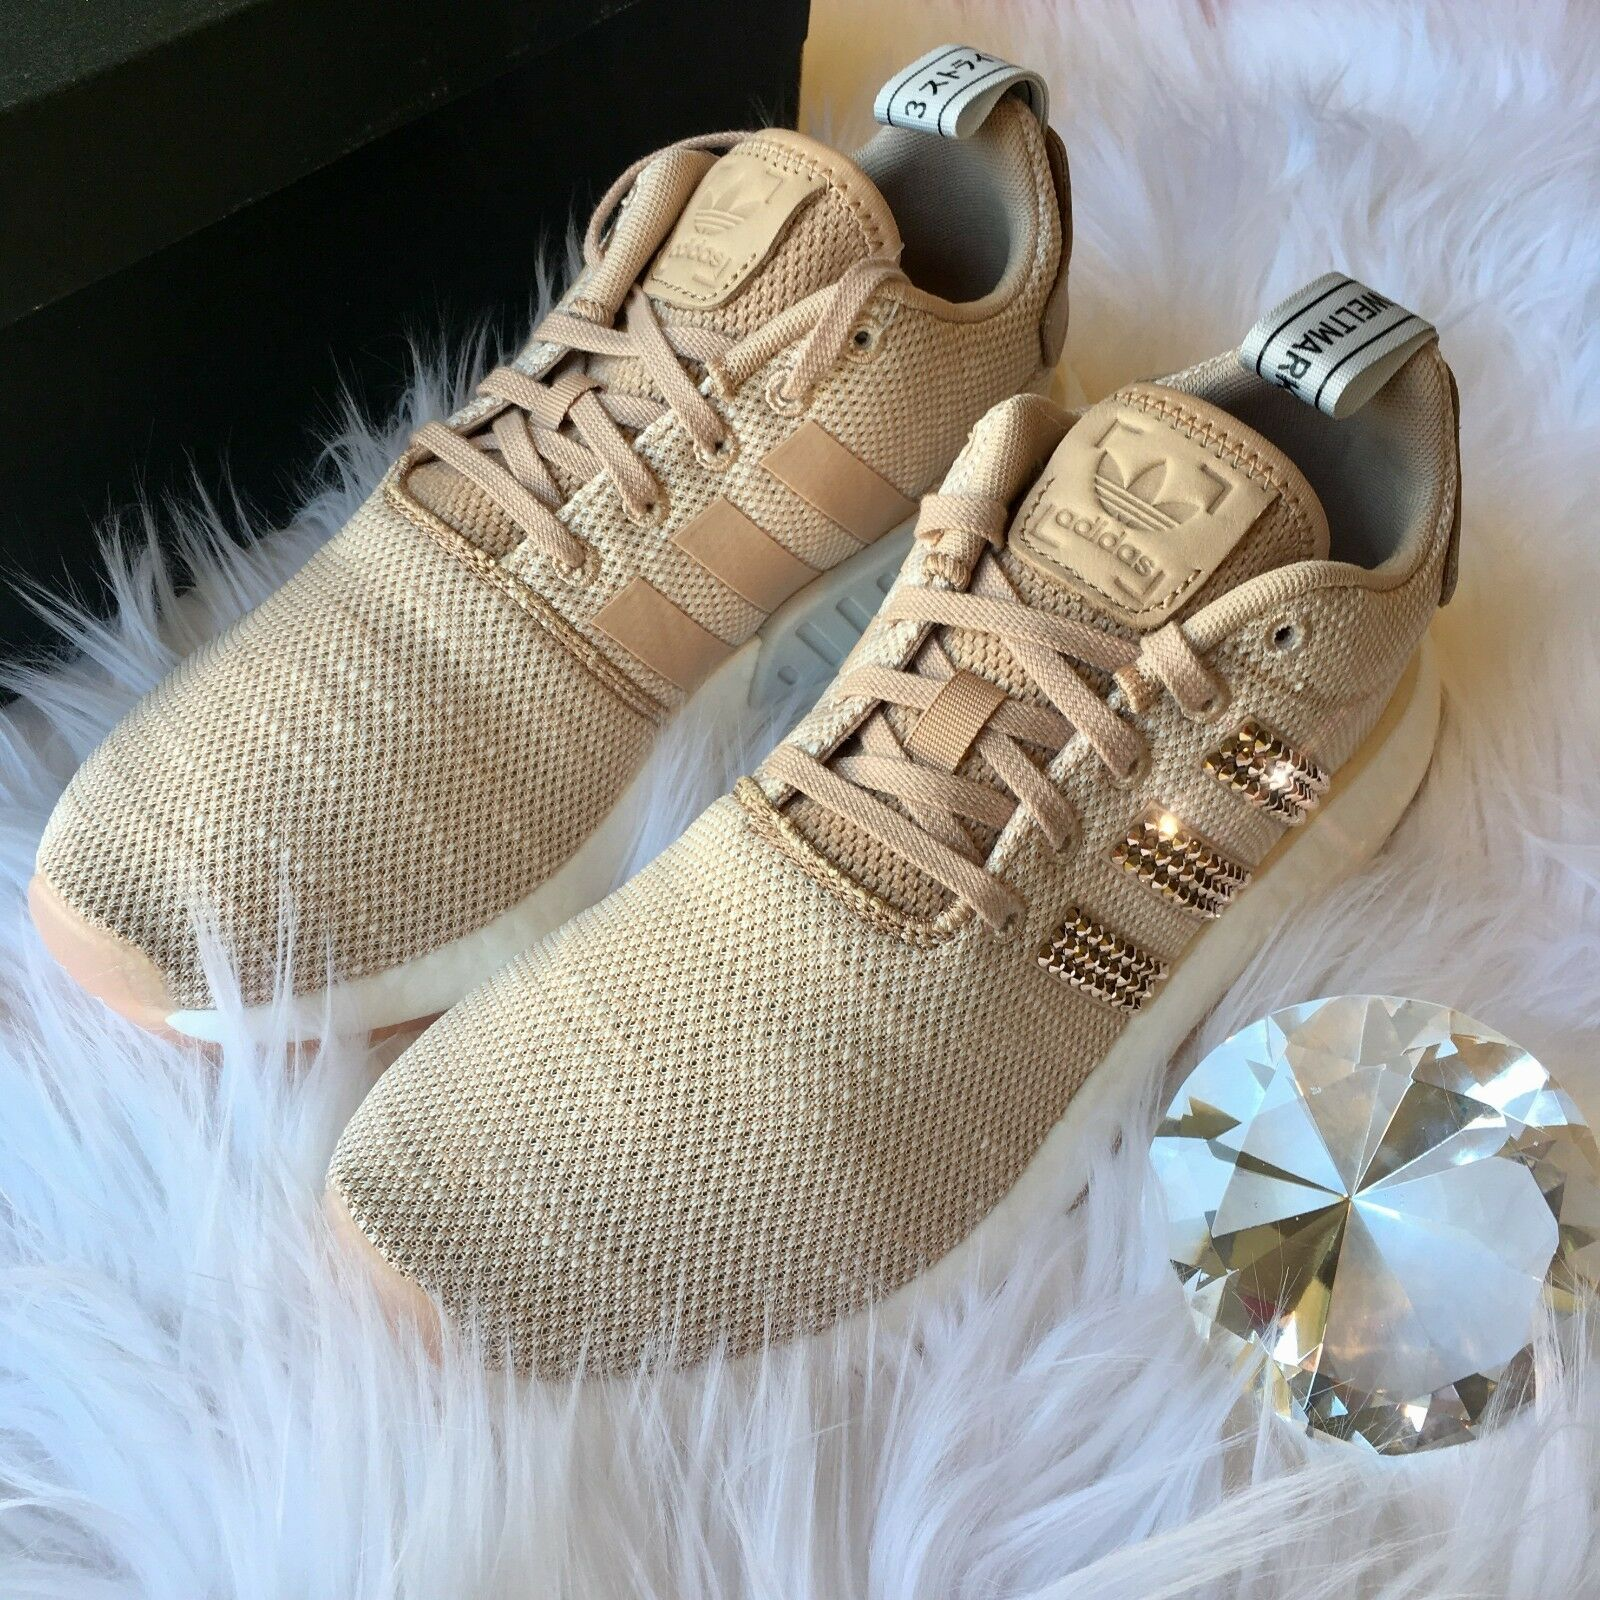 Bling Adidas NMD ROSE GOLD Women's Shoes w/ Swarovski Crystals